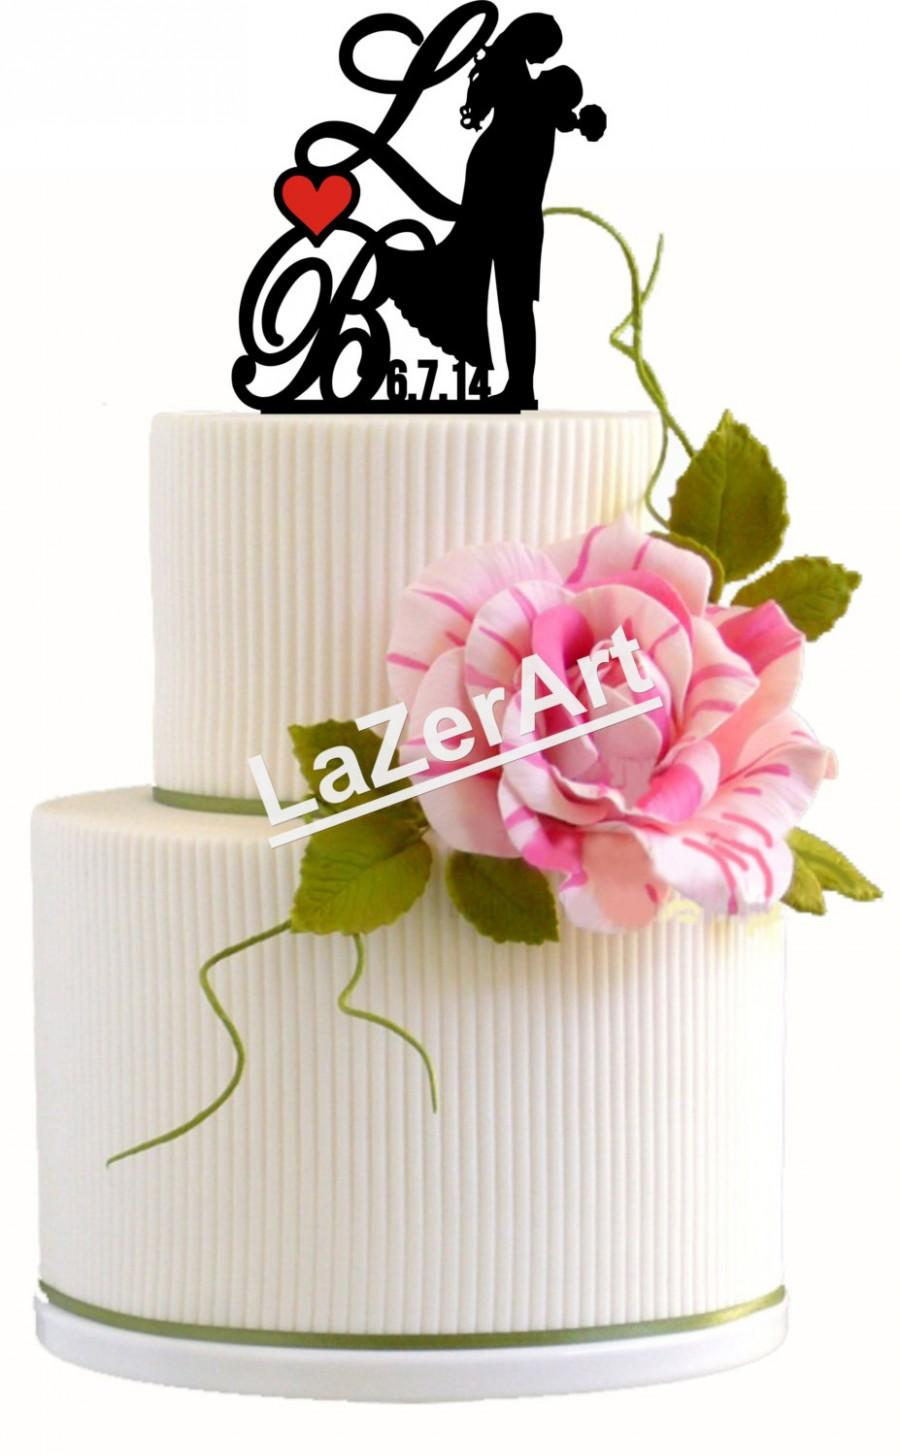 Wedding - Custom Wedding Cake Topper Forever Yours Silhouette Groom and Bride with Initials